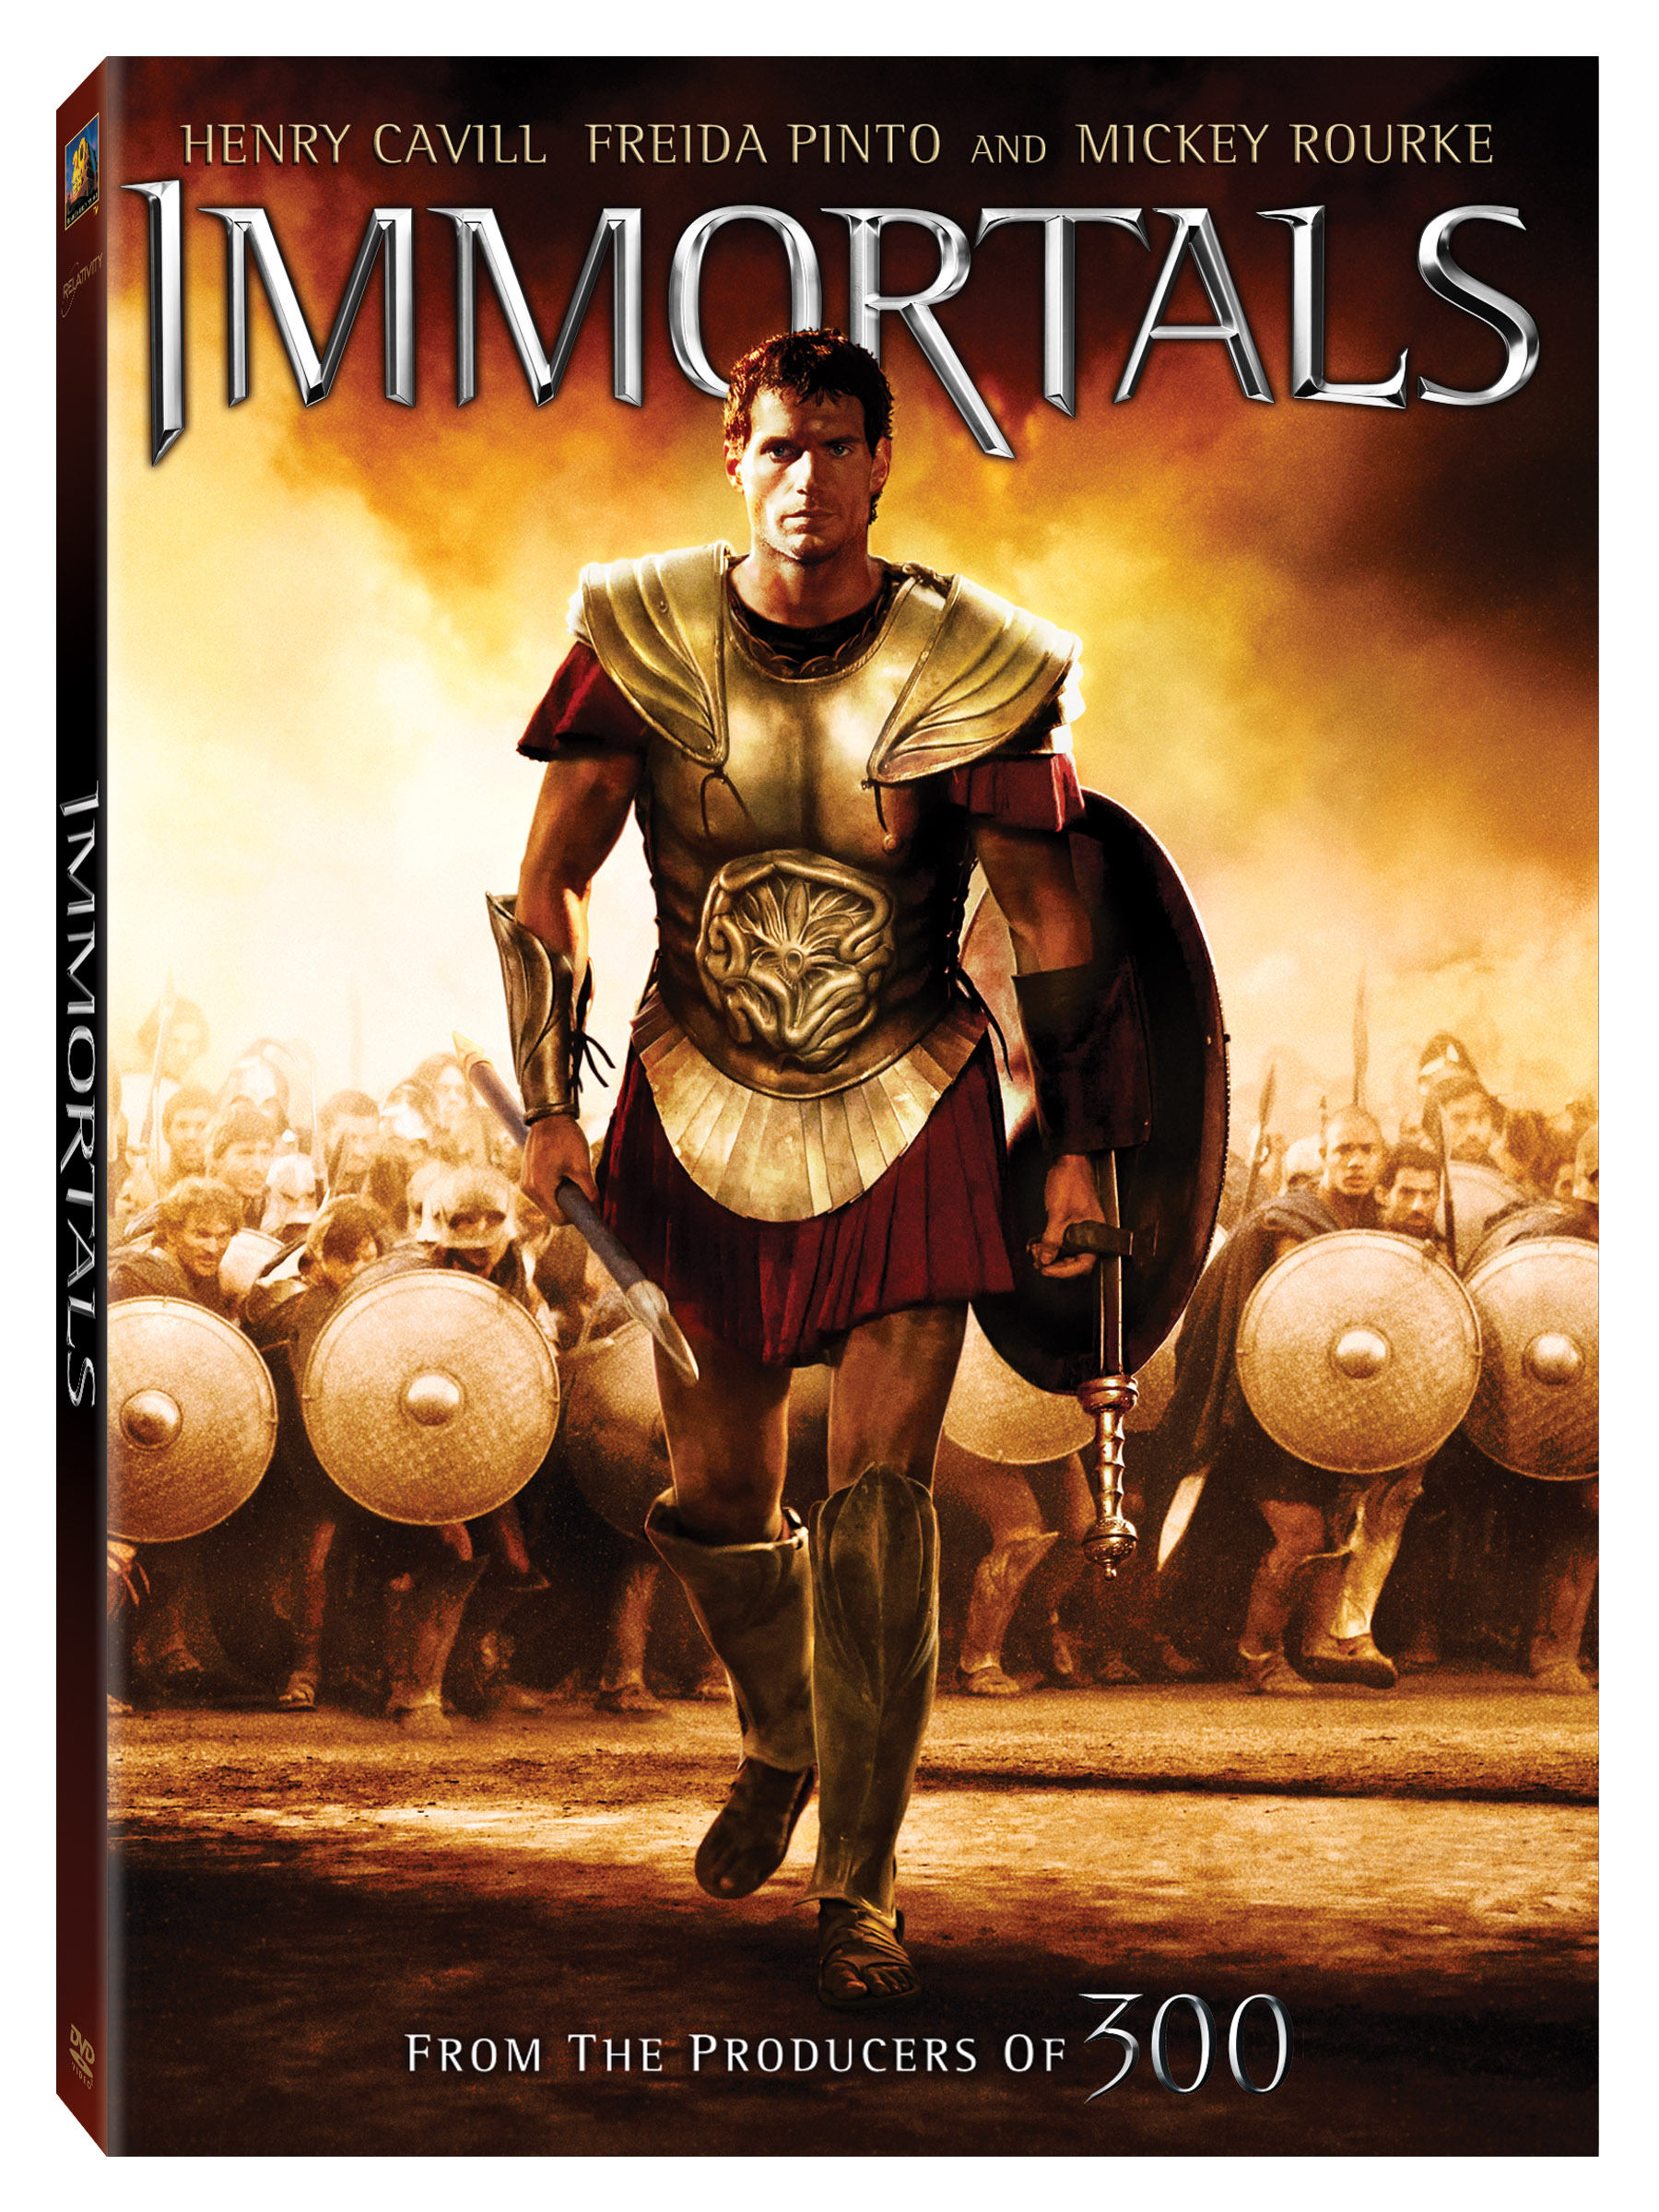 Movies that Kick: IMMORTALS now out on DVD